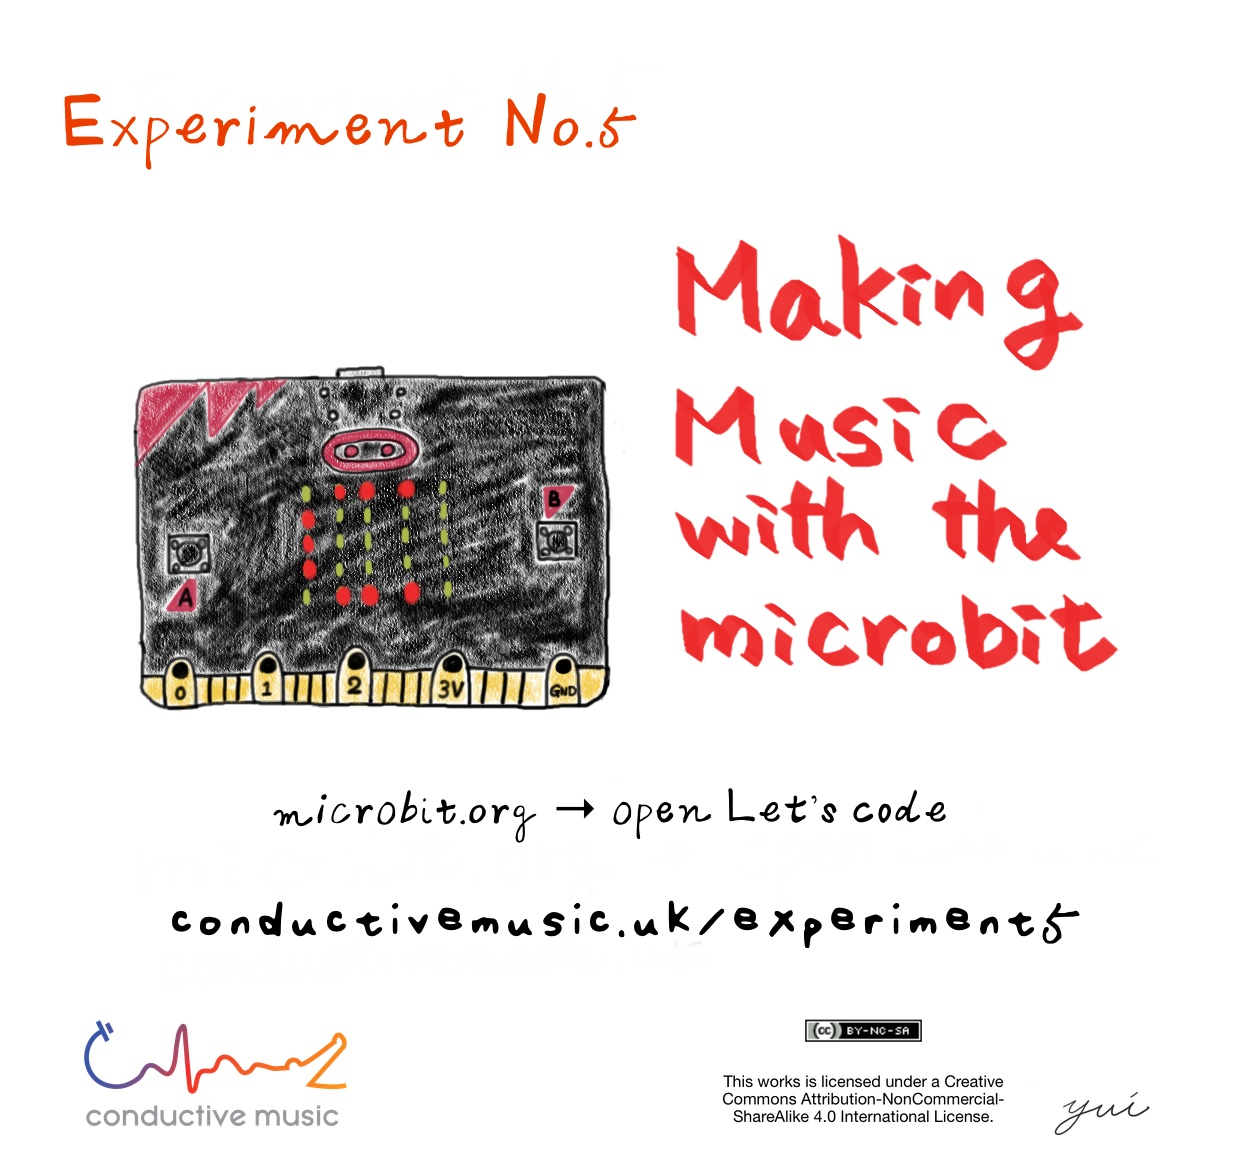 Making music with the microbit1